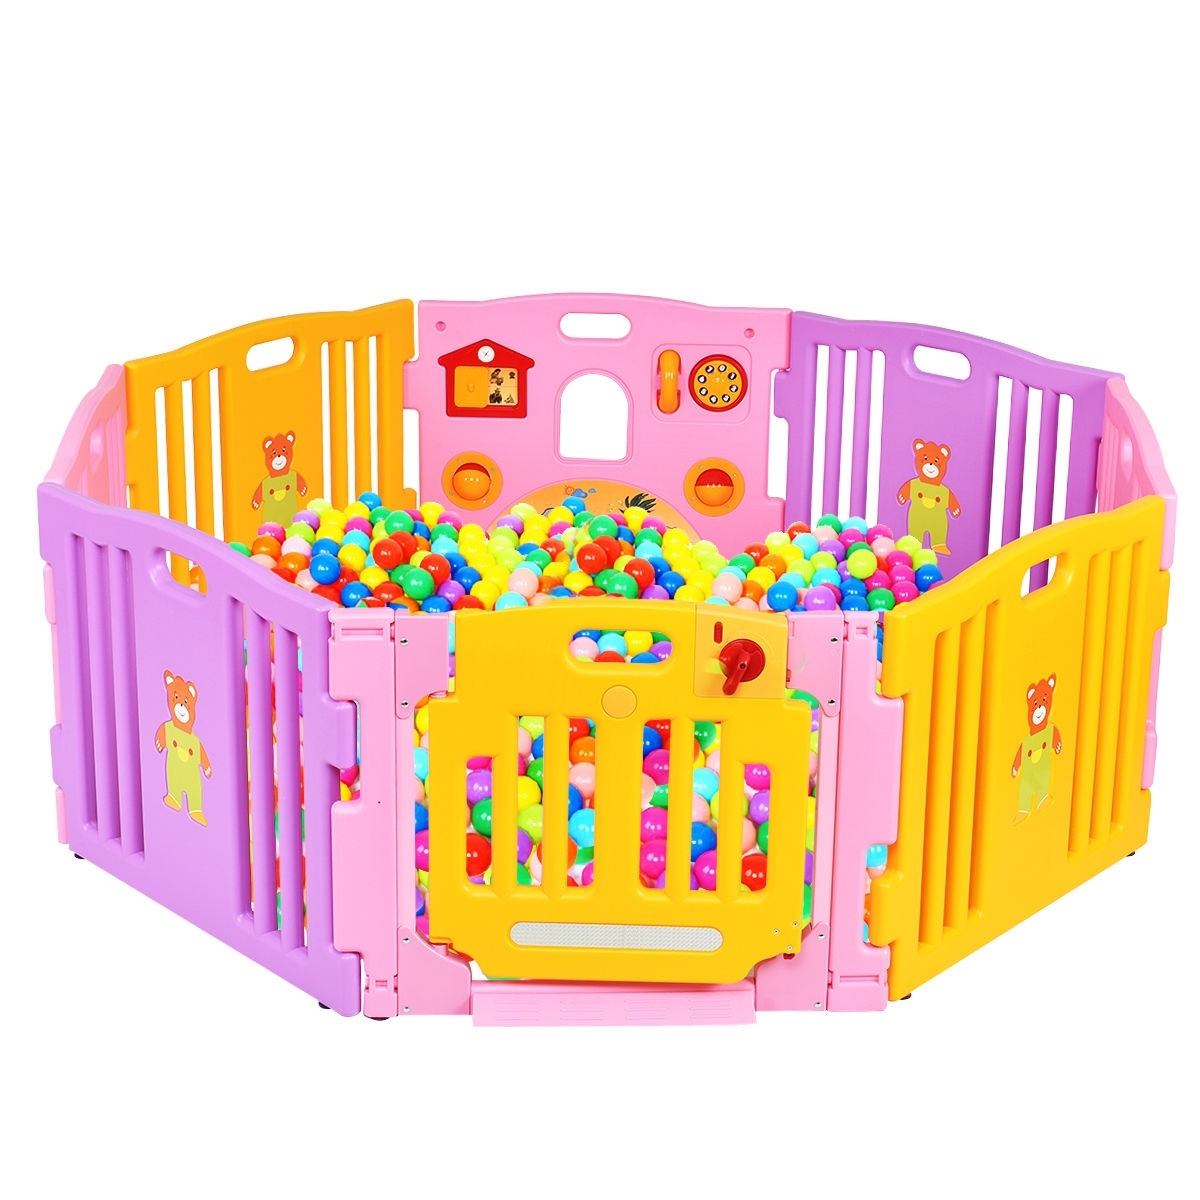 8 Panel Safety Play Center Baby Playpen